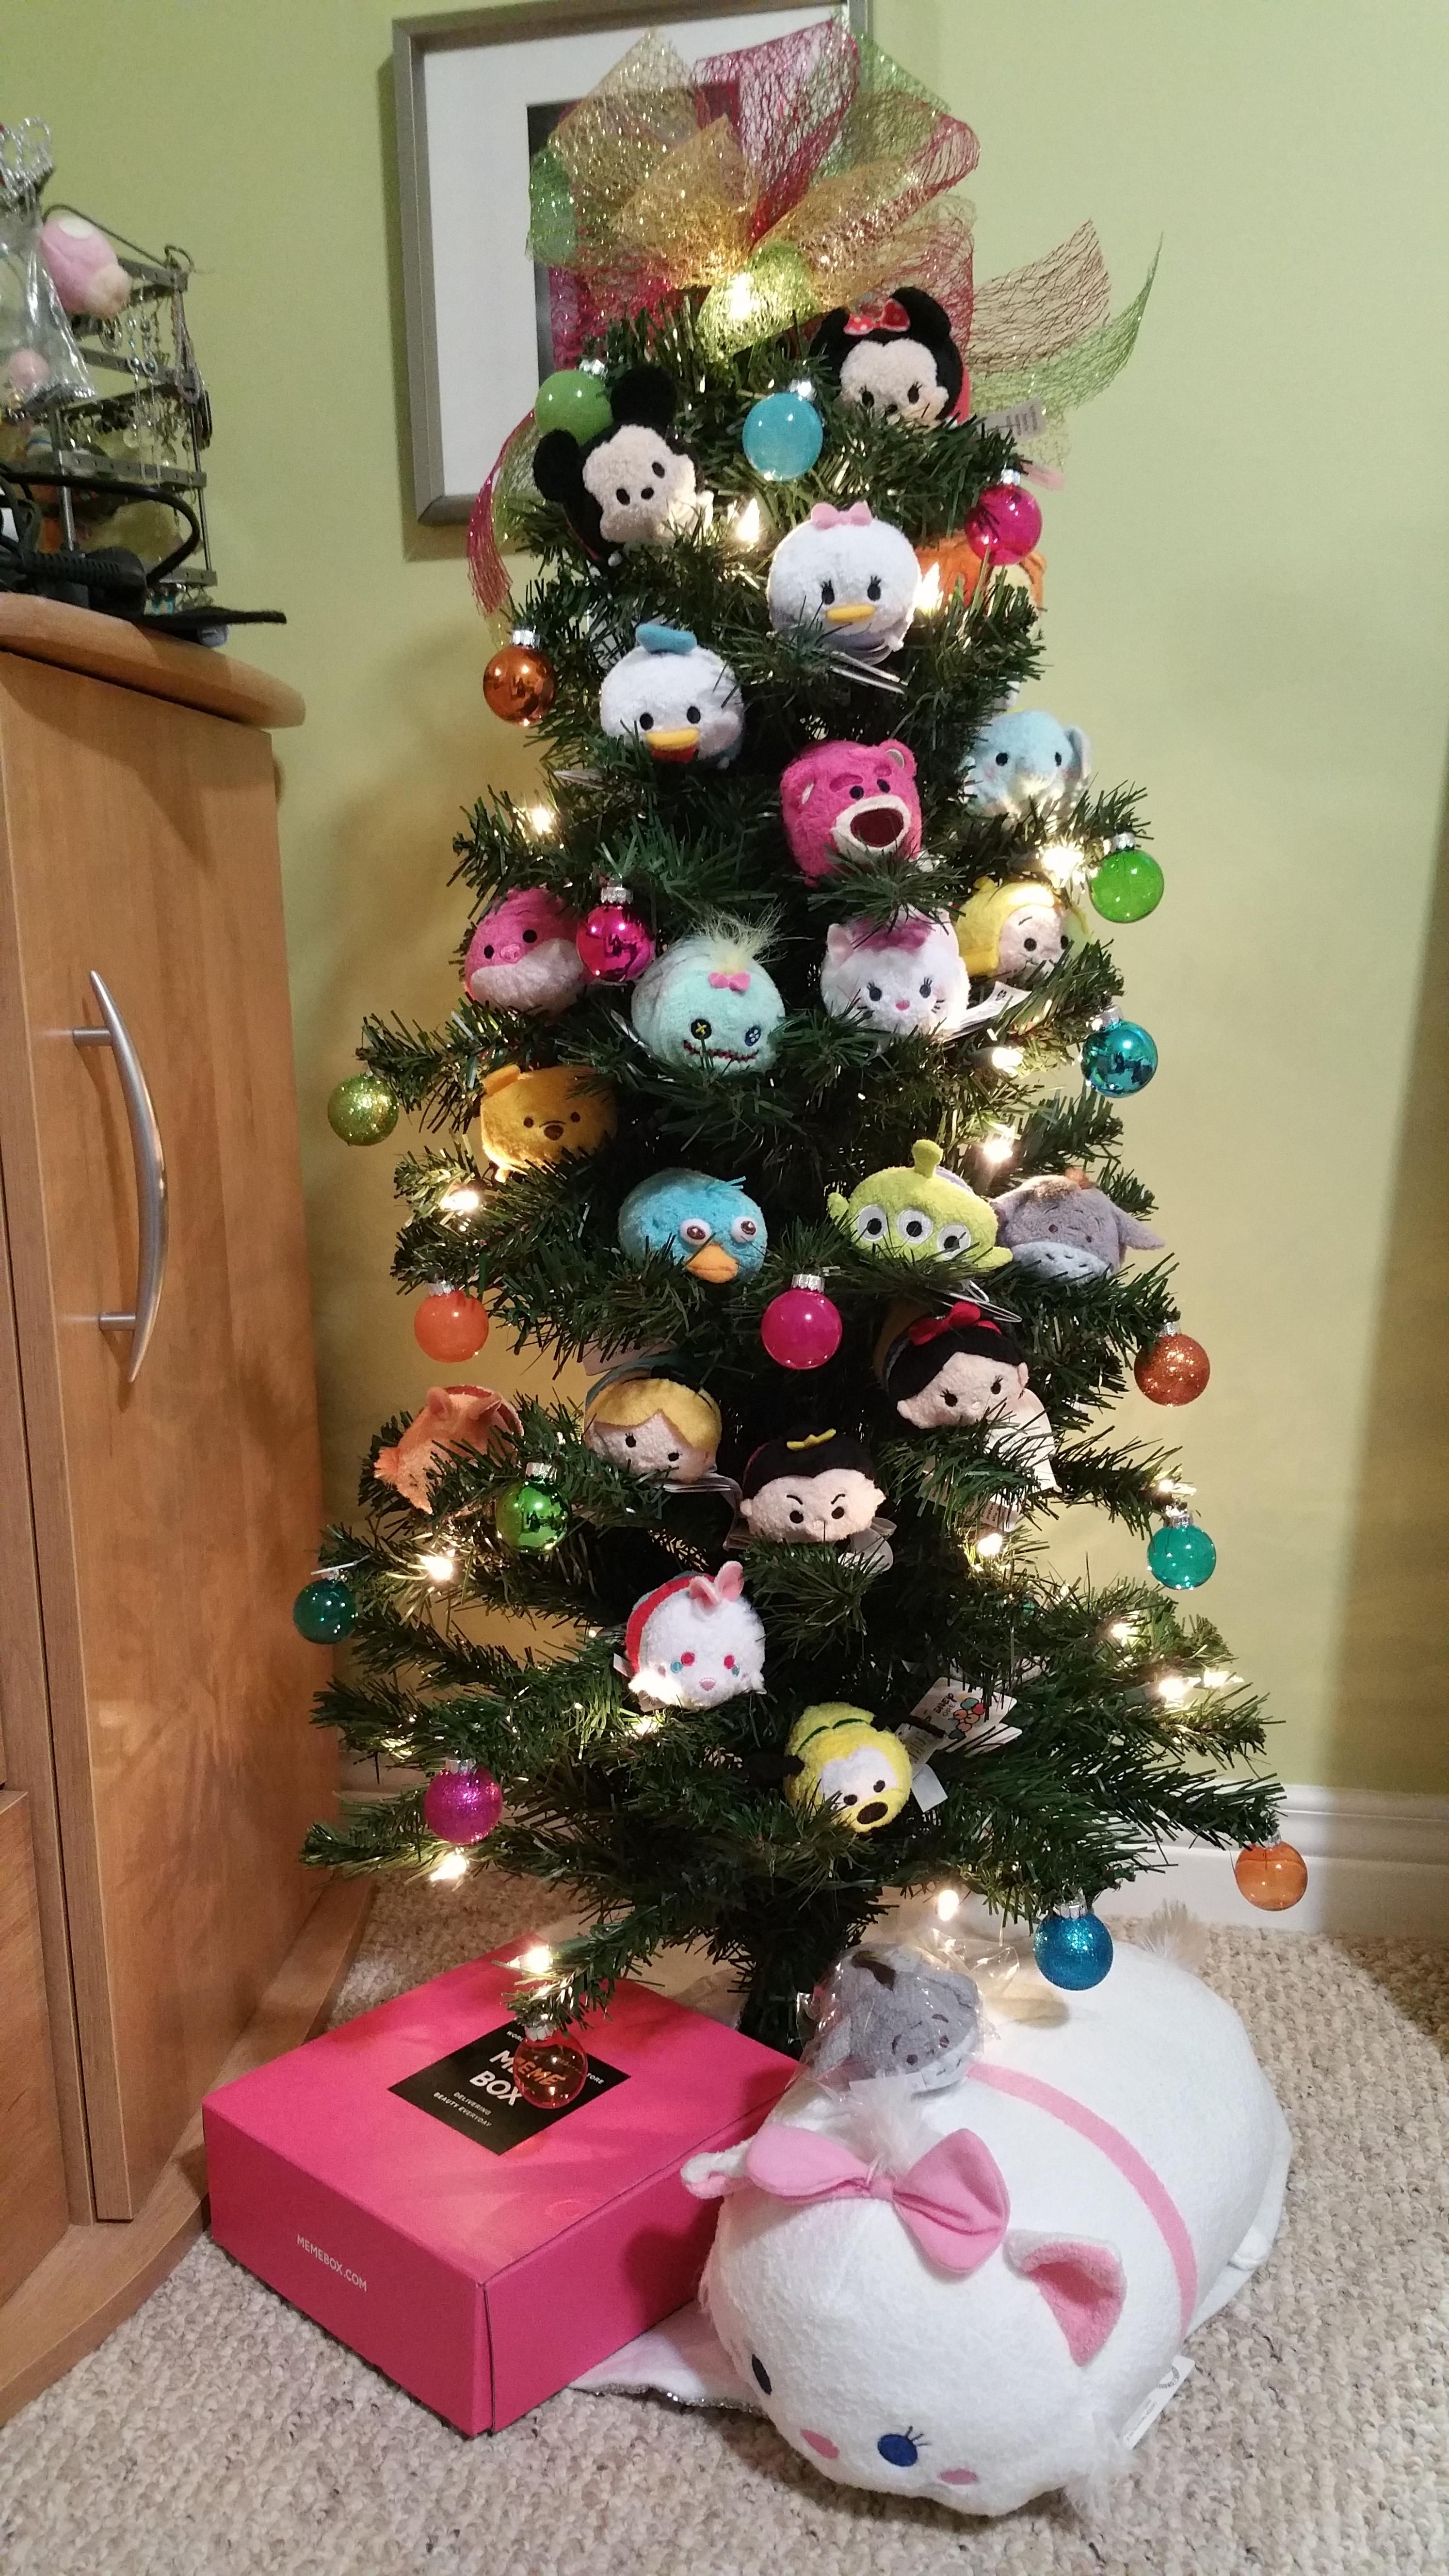 Disney christmas decorations for home - I M Thinking Of Having A Disney Tsum Tsum Christmas Tree This Year After